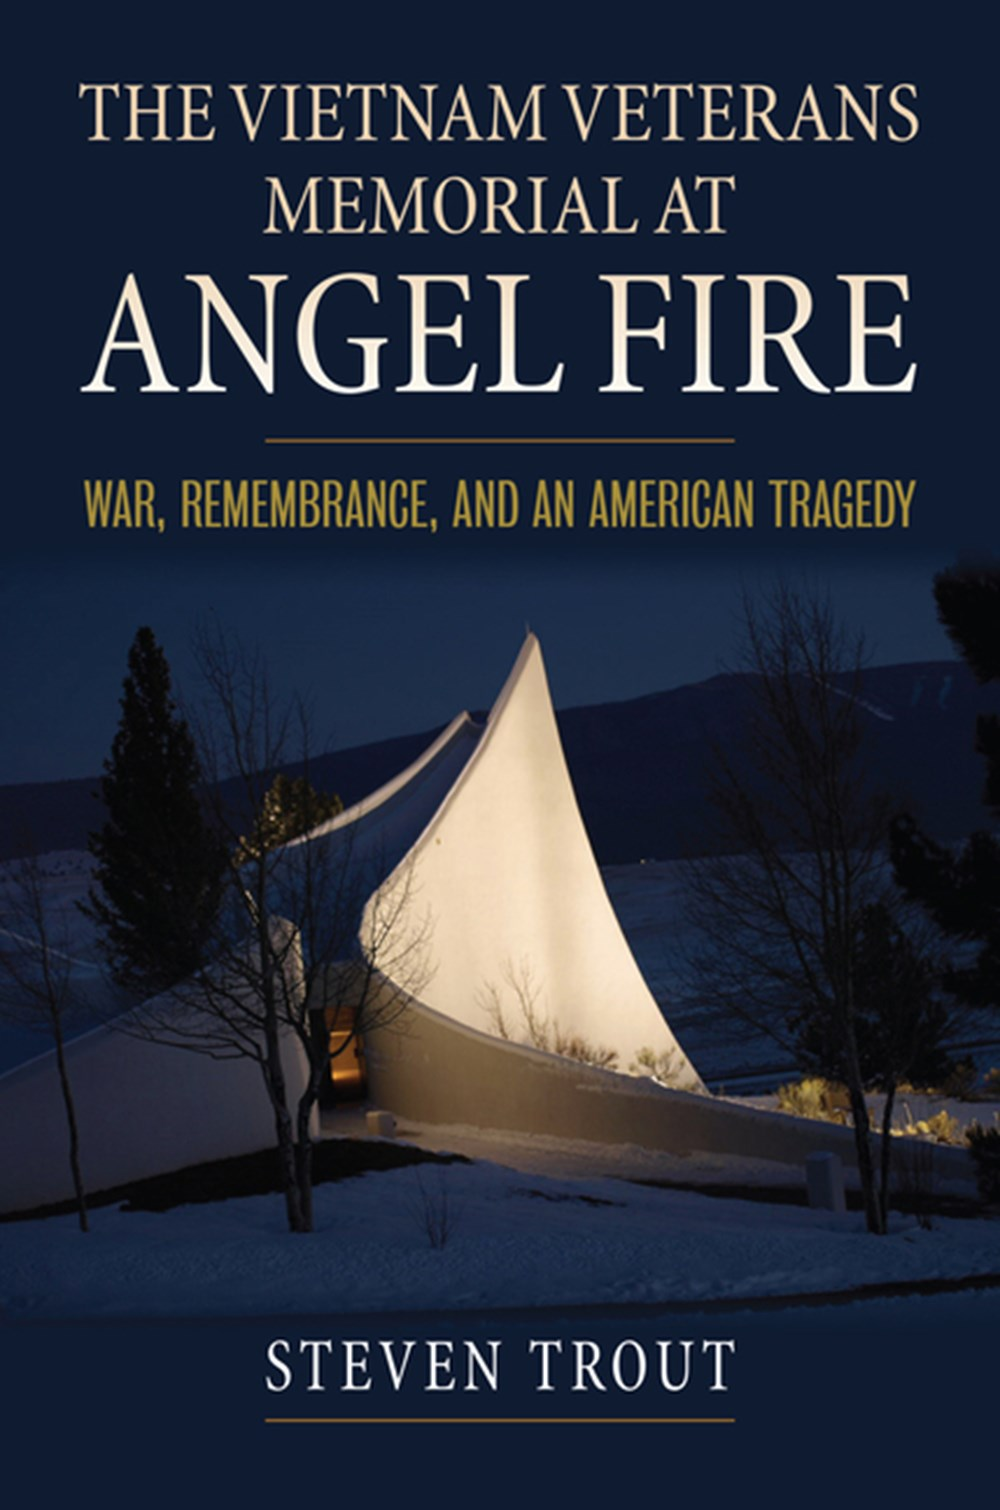 Vietnam Veterans Memorial at Angel Fire War, Remembrance, and an American Tragedy